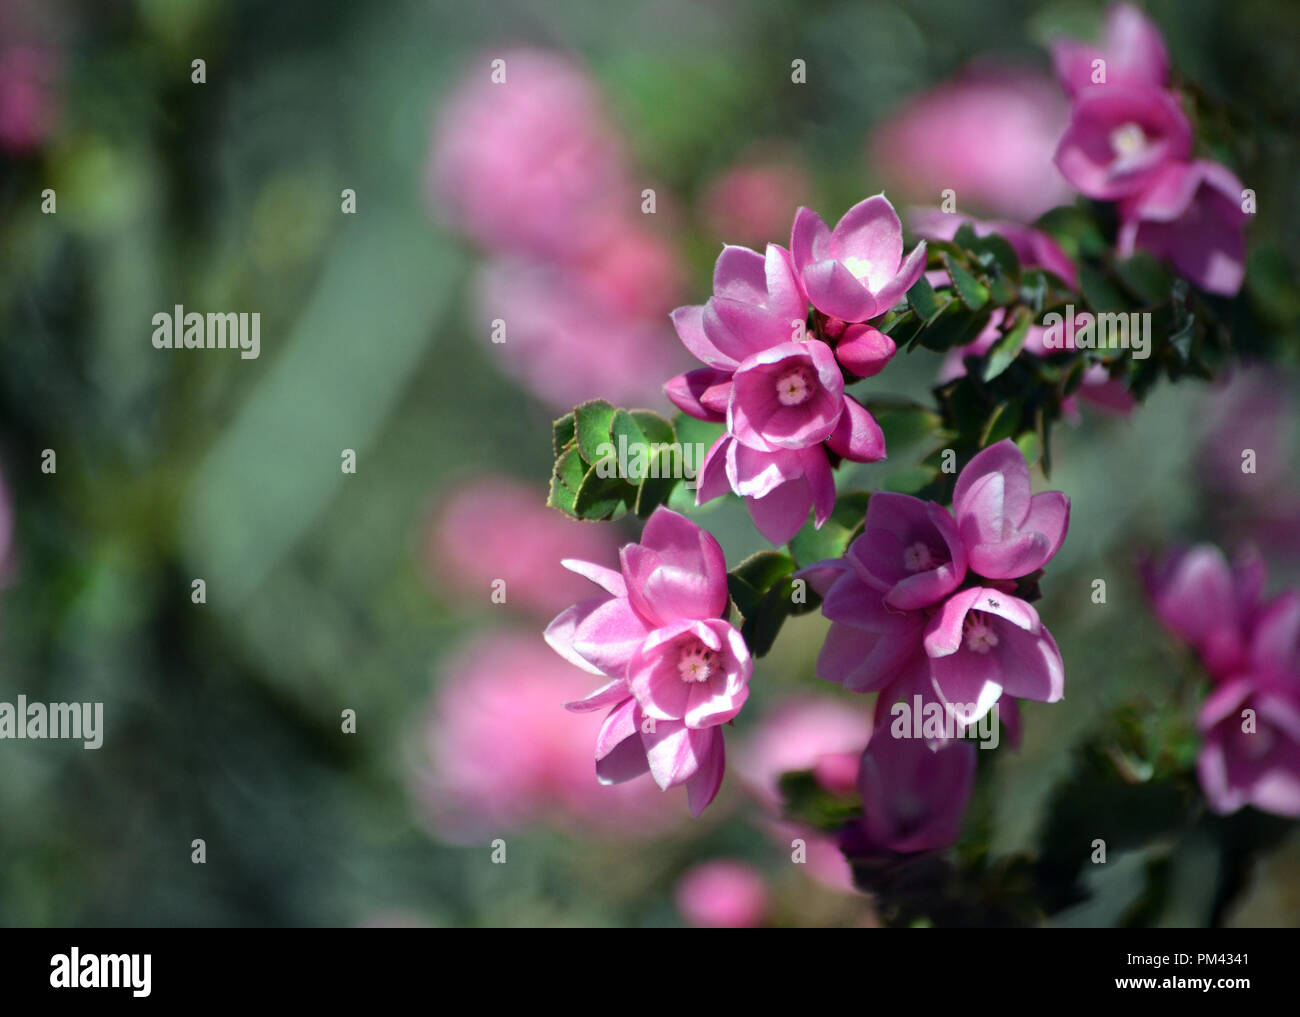 Pink Flowers Australia Deep Pink Flowers Of The Australian Native Rose Boronia Serrulata